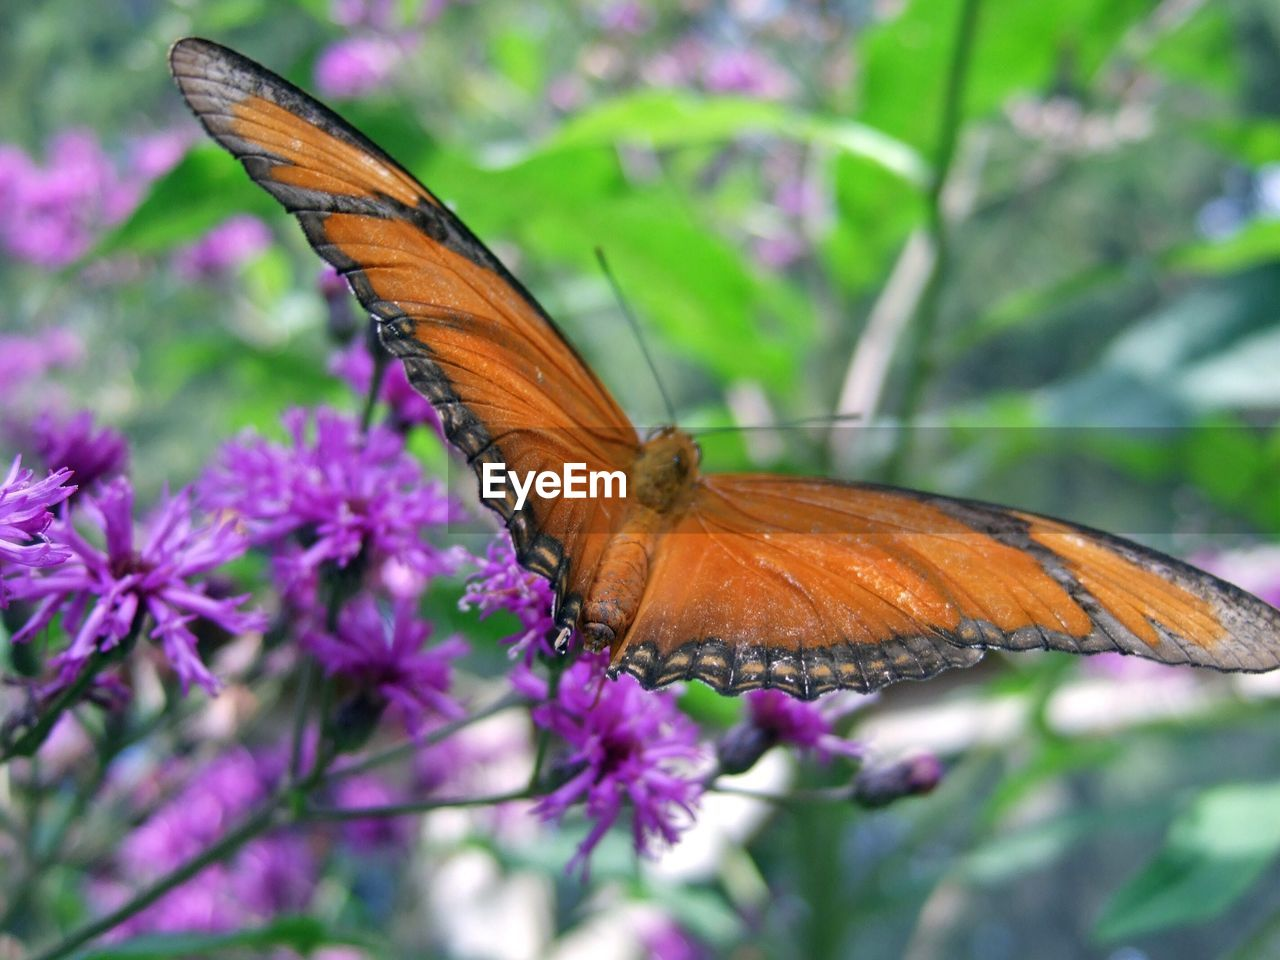 butterfly - insect, insect, one animal, animals in the wild, animal themes, flower, butterfly, nature, purple, plant, fragility, close-up, animal wildlife, no people, beauty in nature, day, outdoors, freshness, growth, pollination, flower head, spread wings